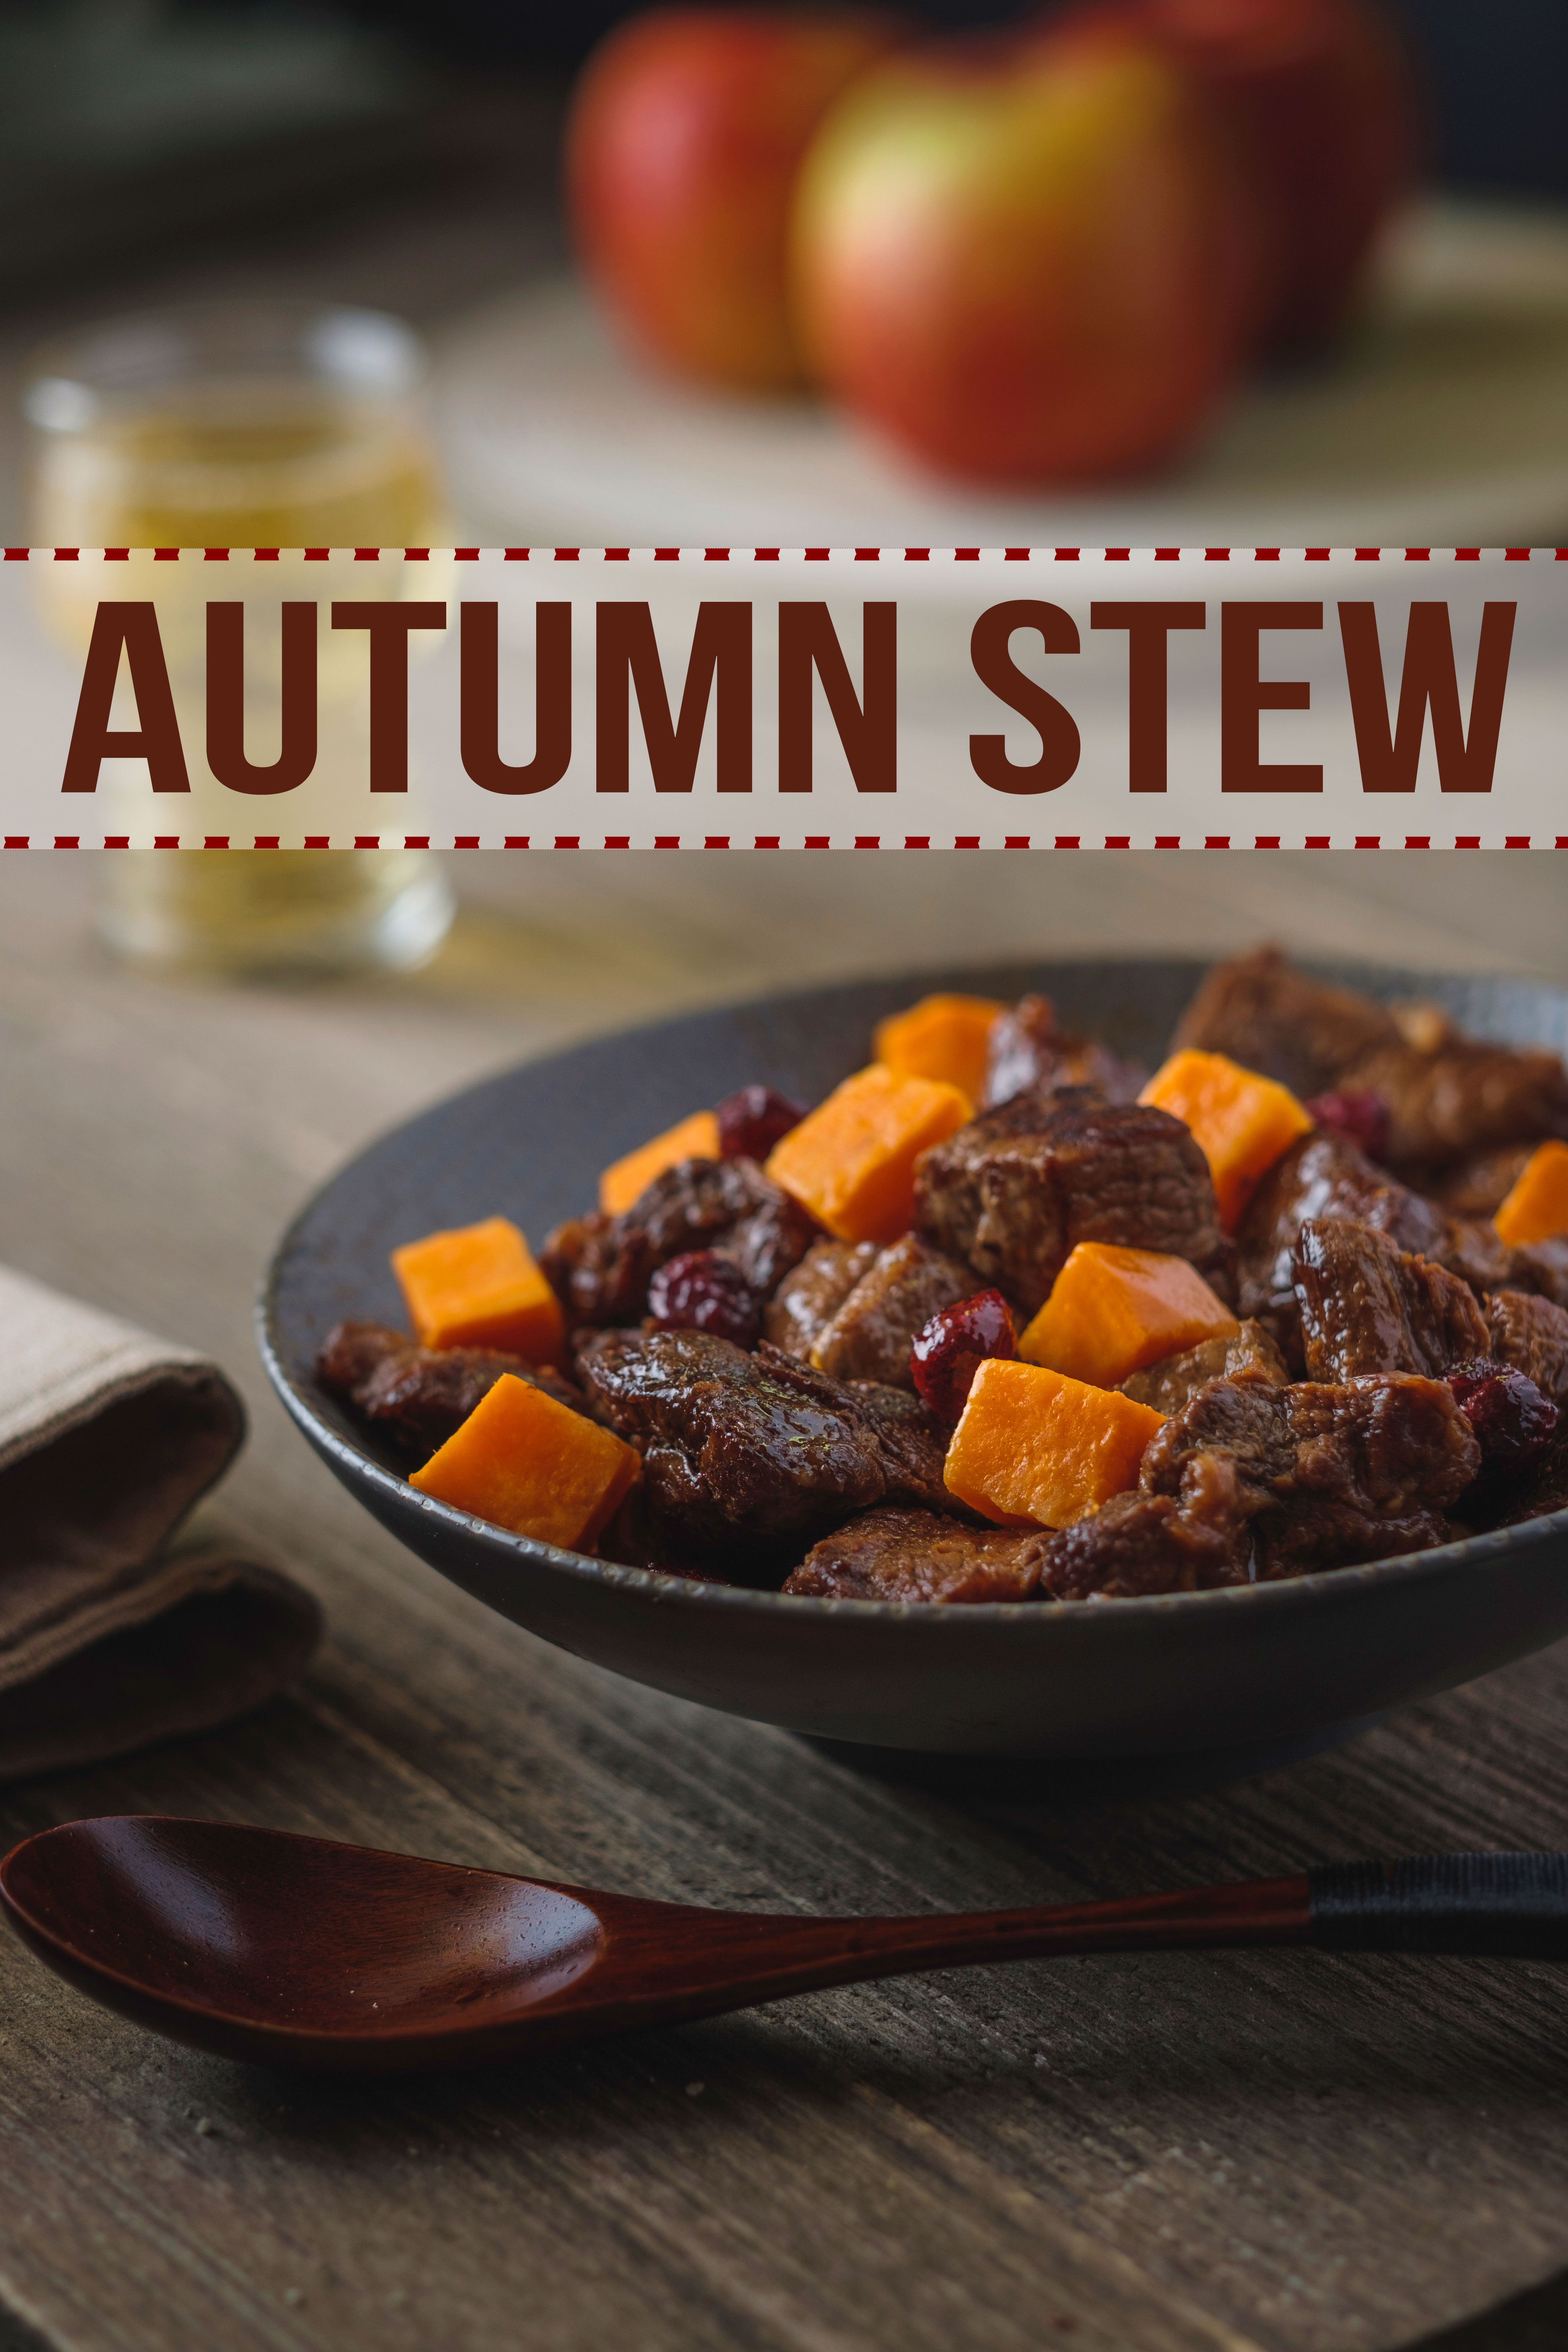 Believe it or not, the apple cider in this beef stew